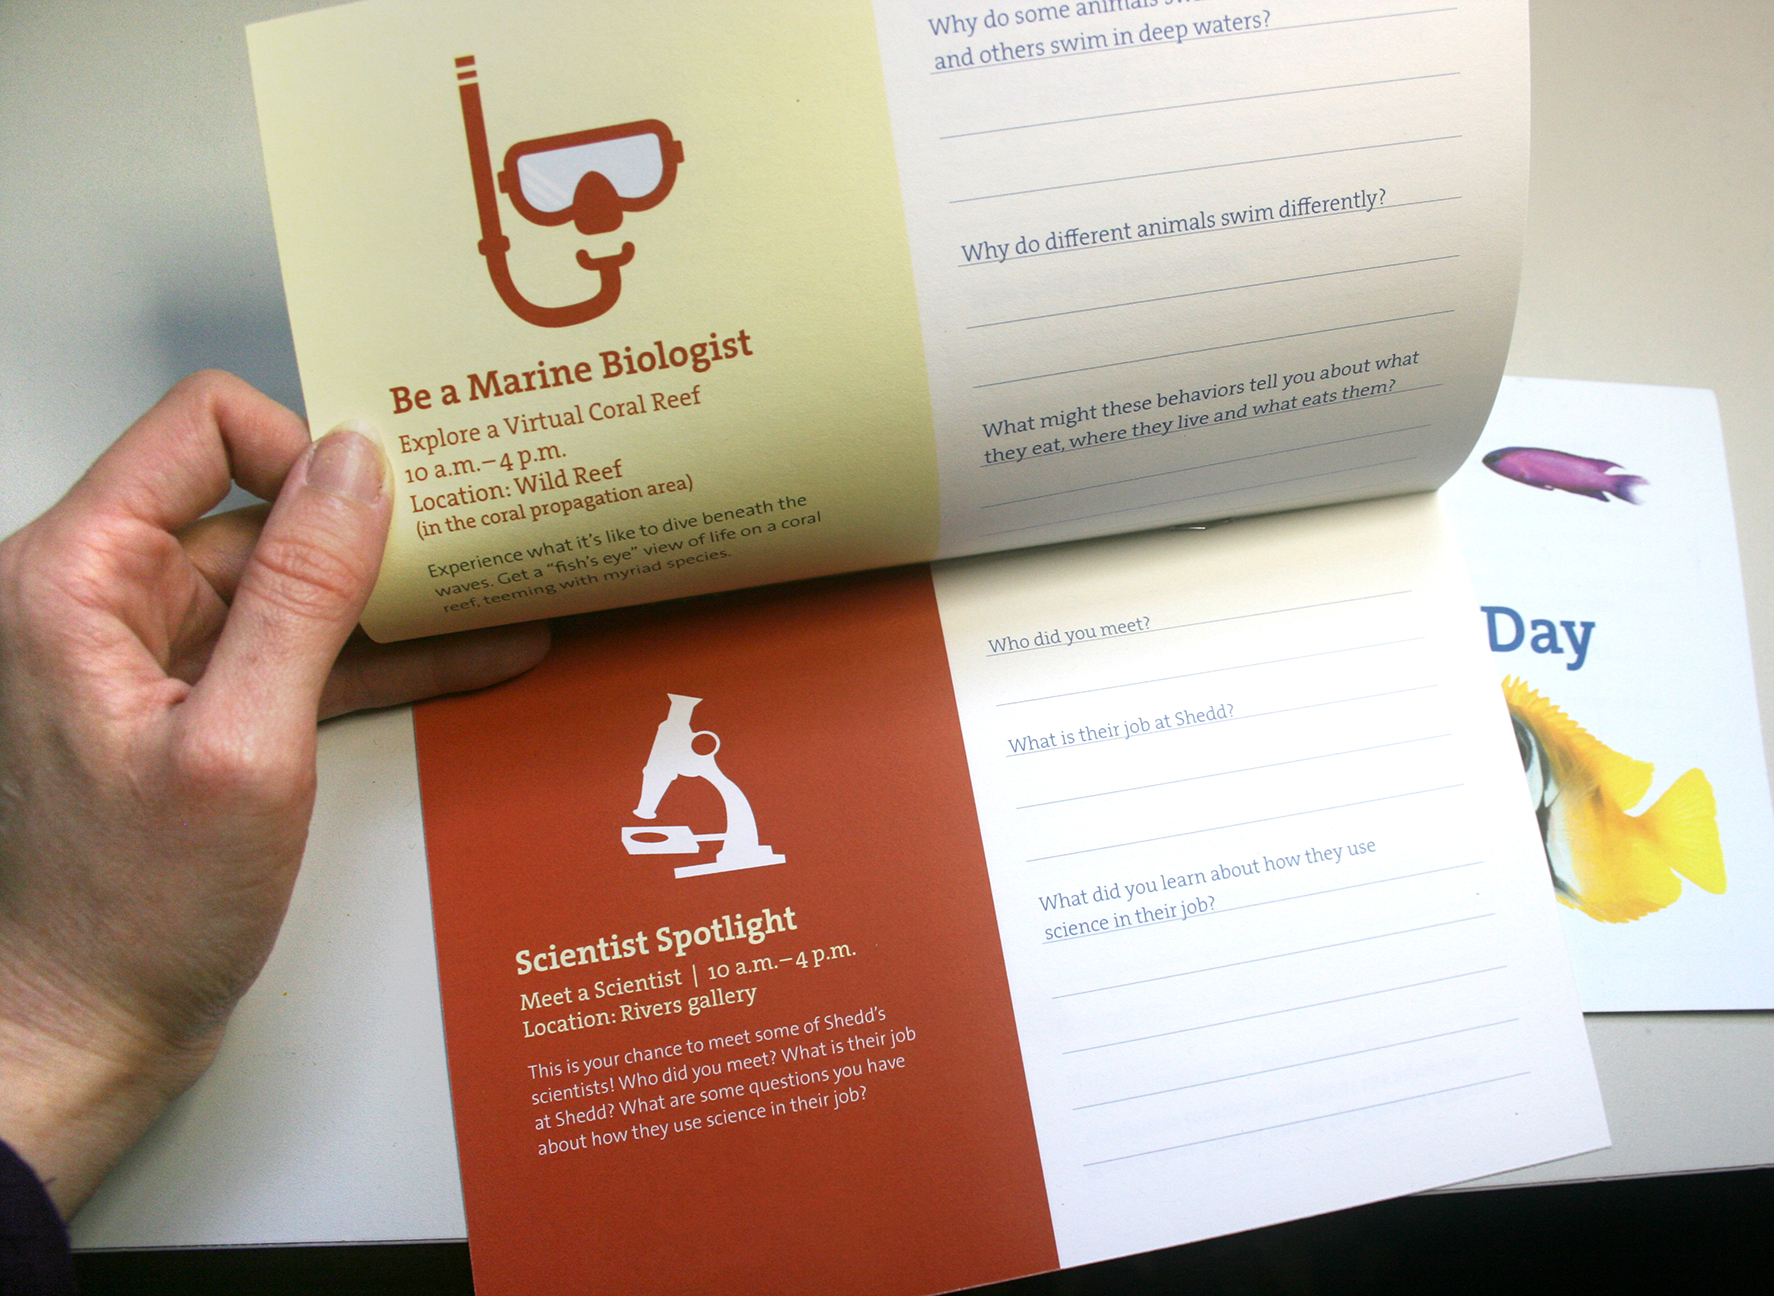 A booklet shown partially opened. Playful icons on colorful backgrounds form an informational section on the left side of the top and bottom pages, with the right sides devoted to questions and lines to answer.